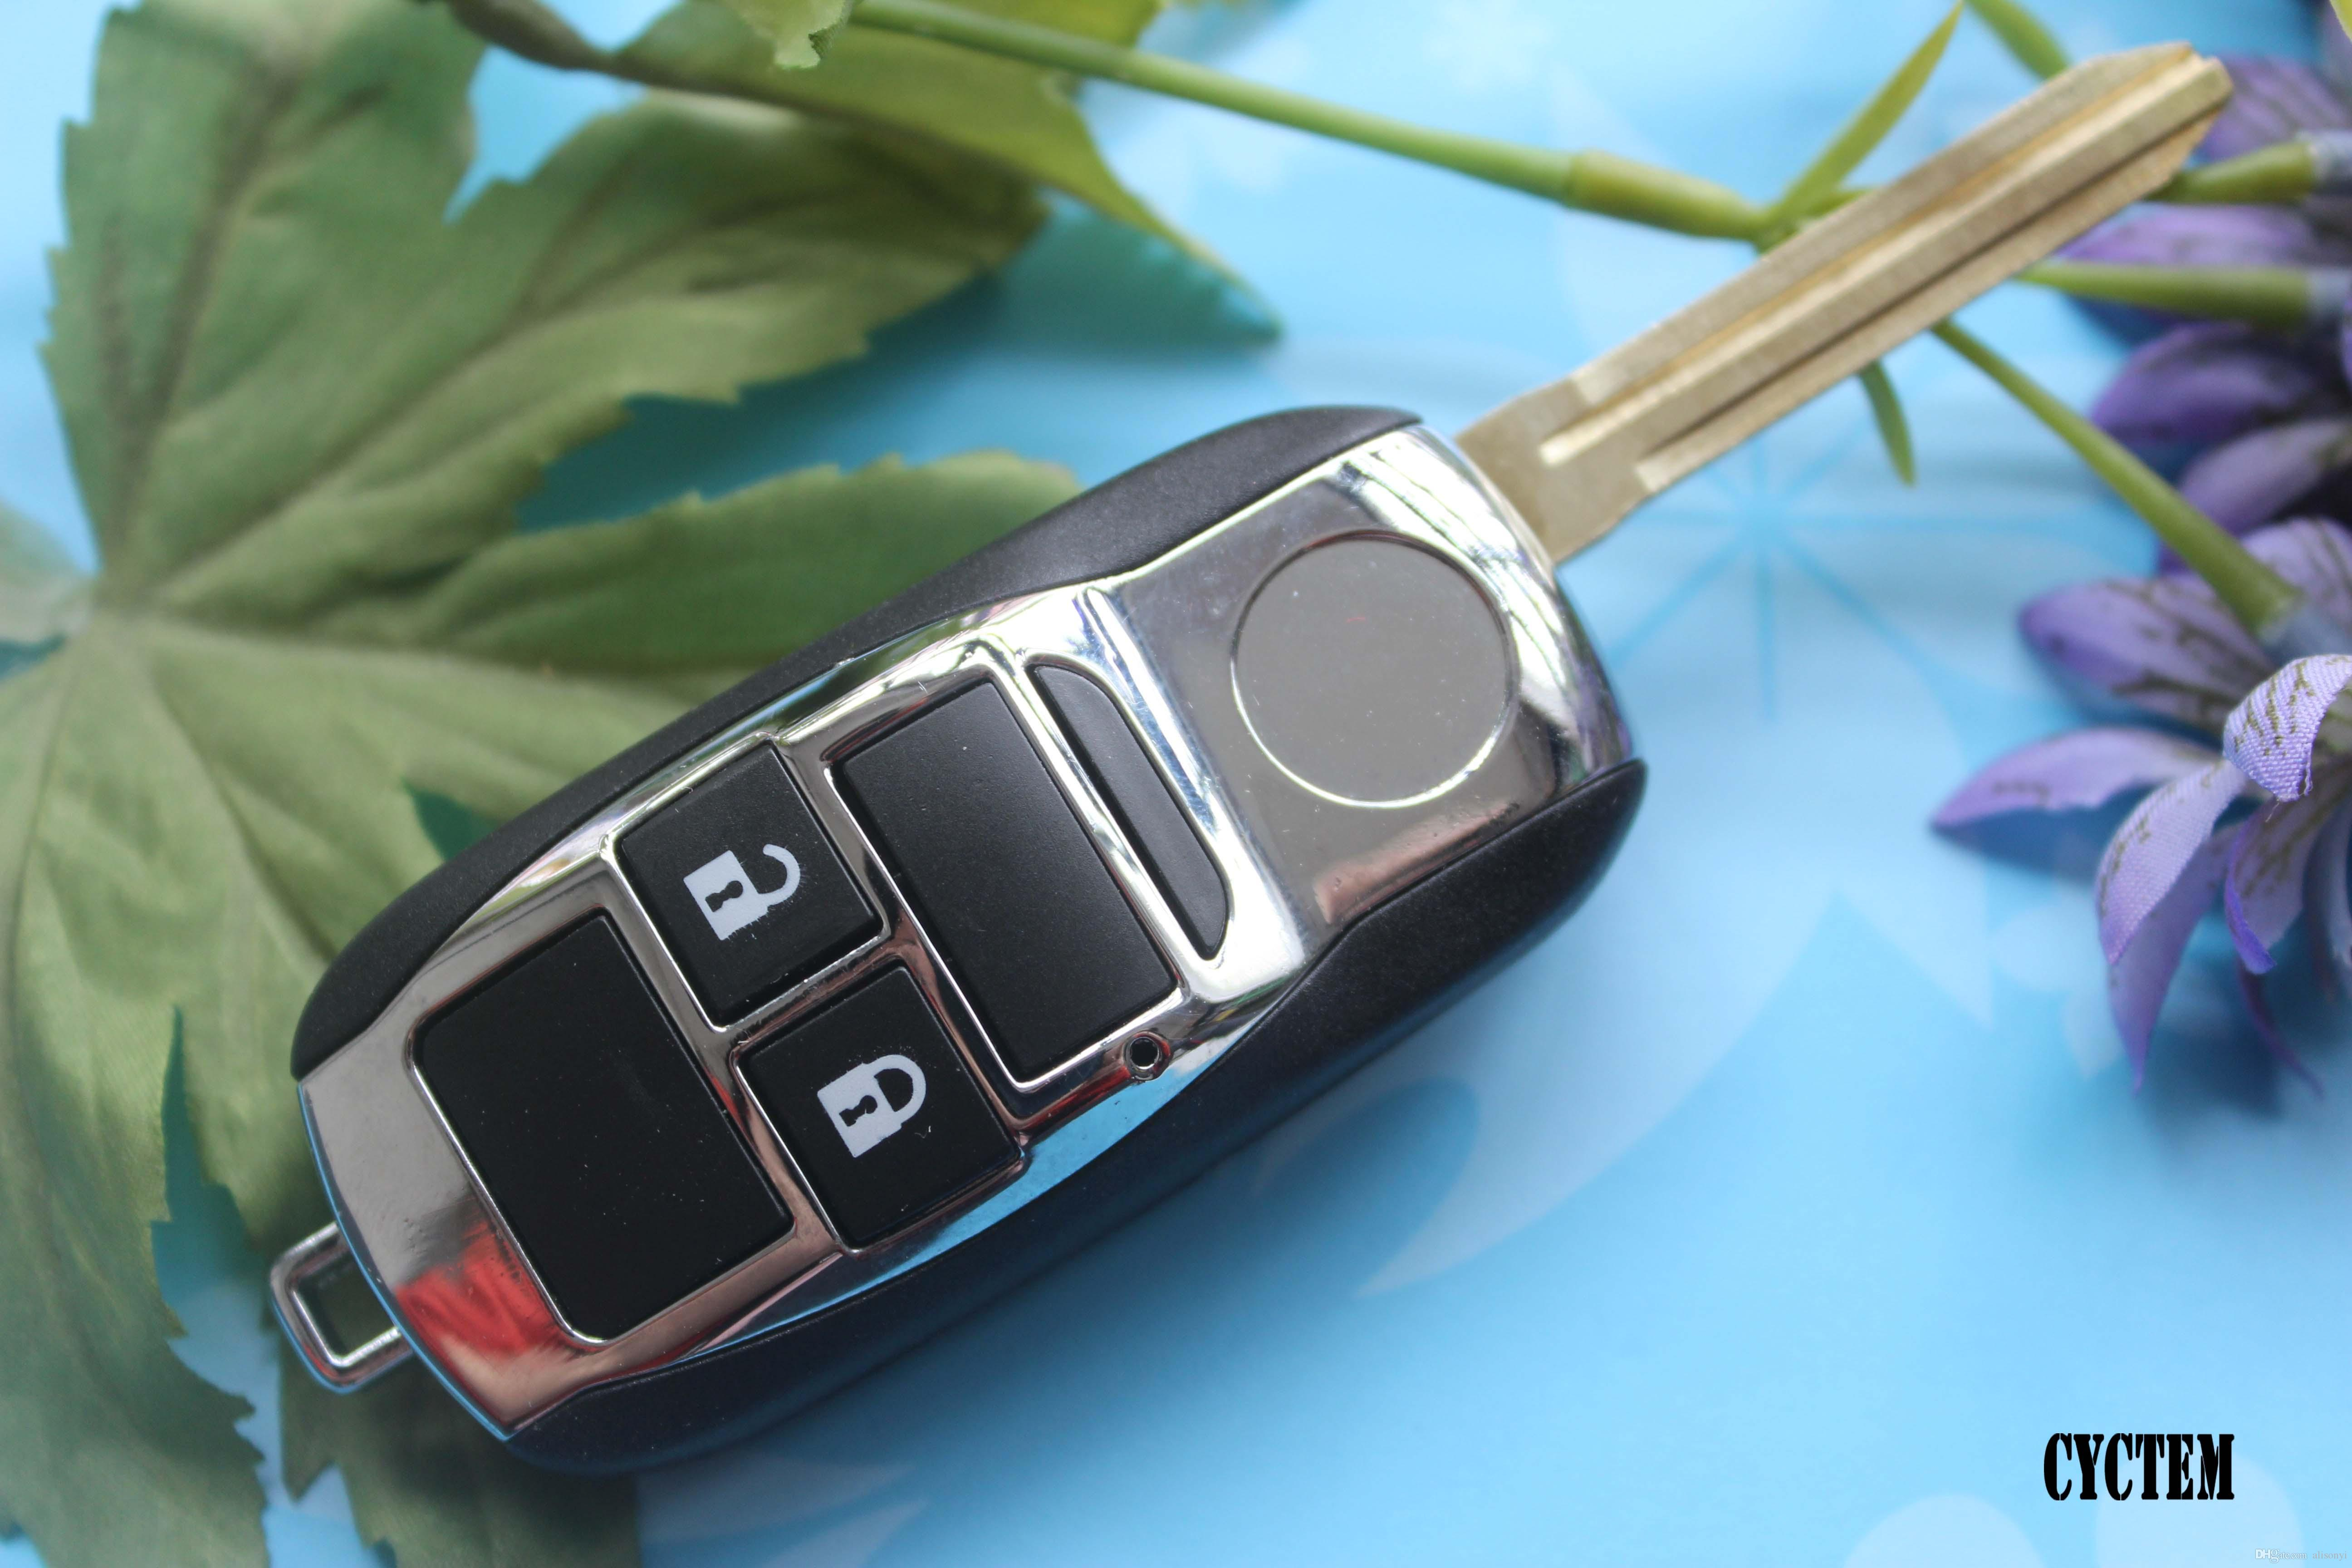 htm extra pelican bmw cover image slot remote techarticles parts elec series key replacement large